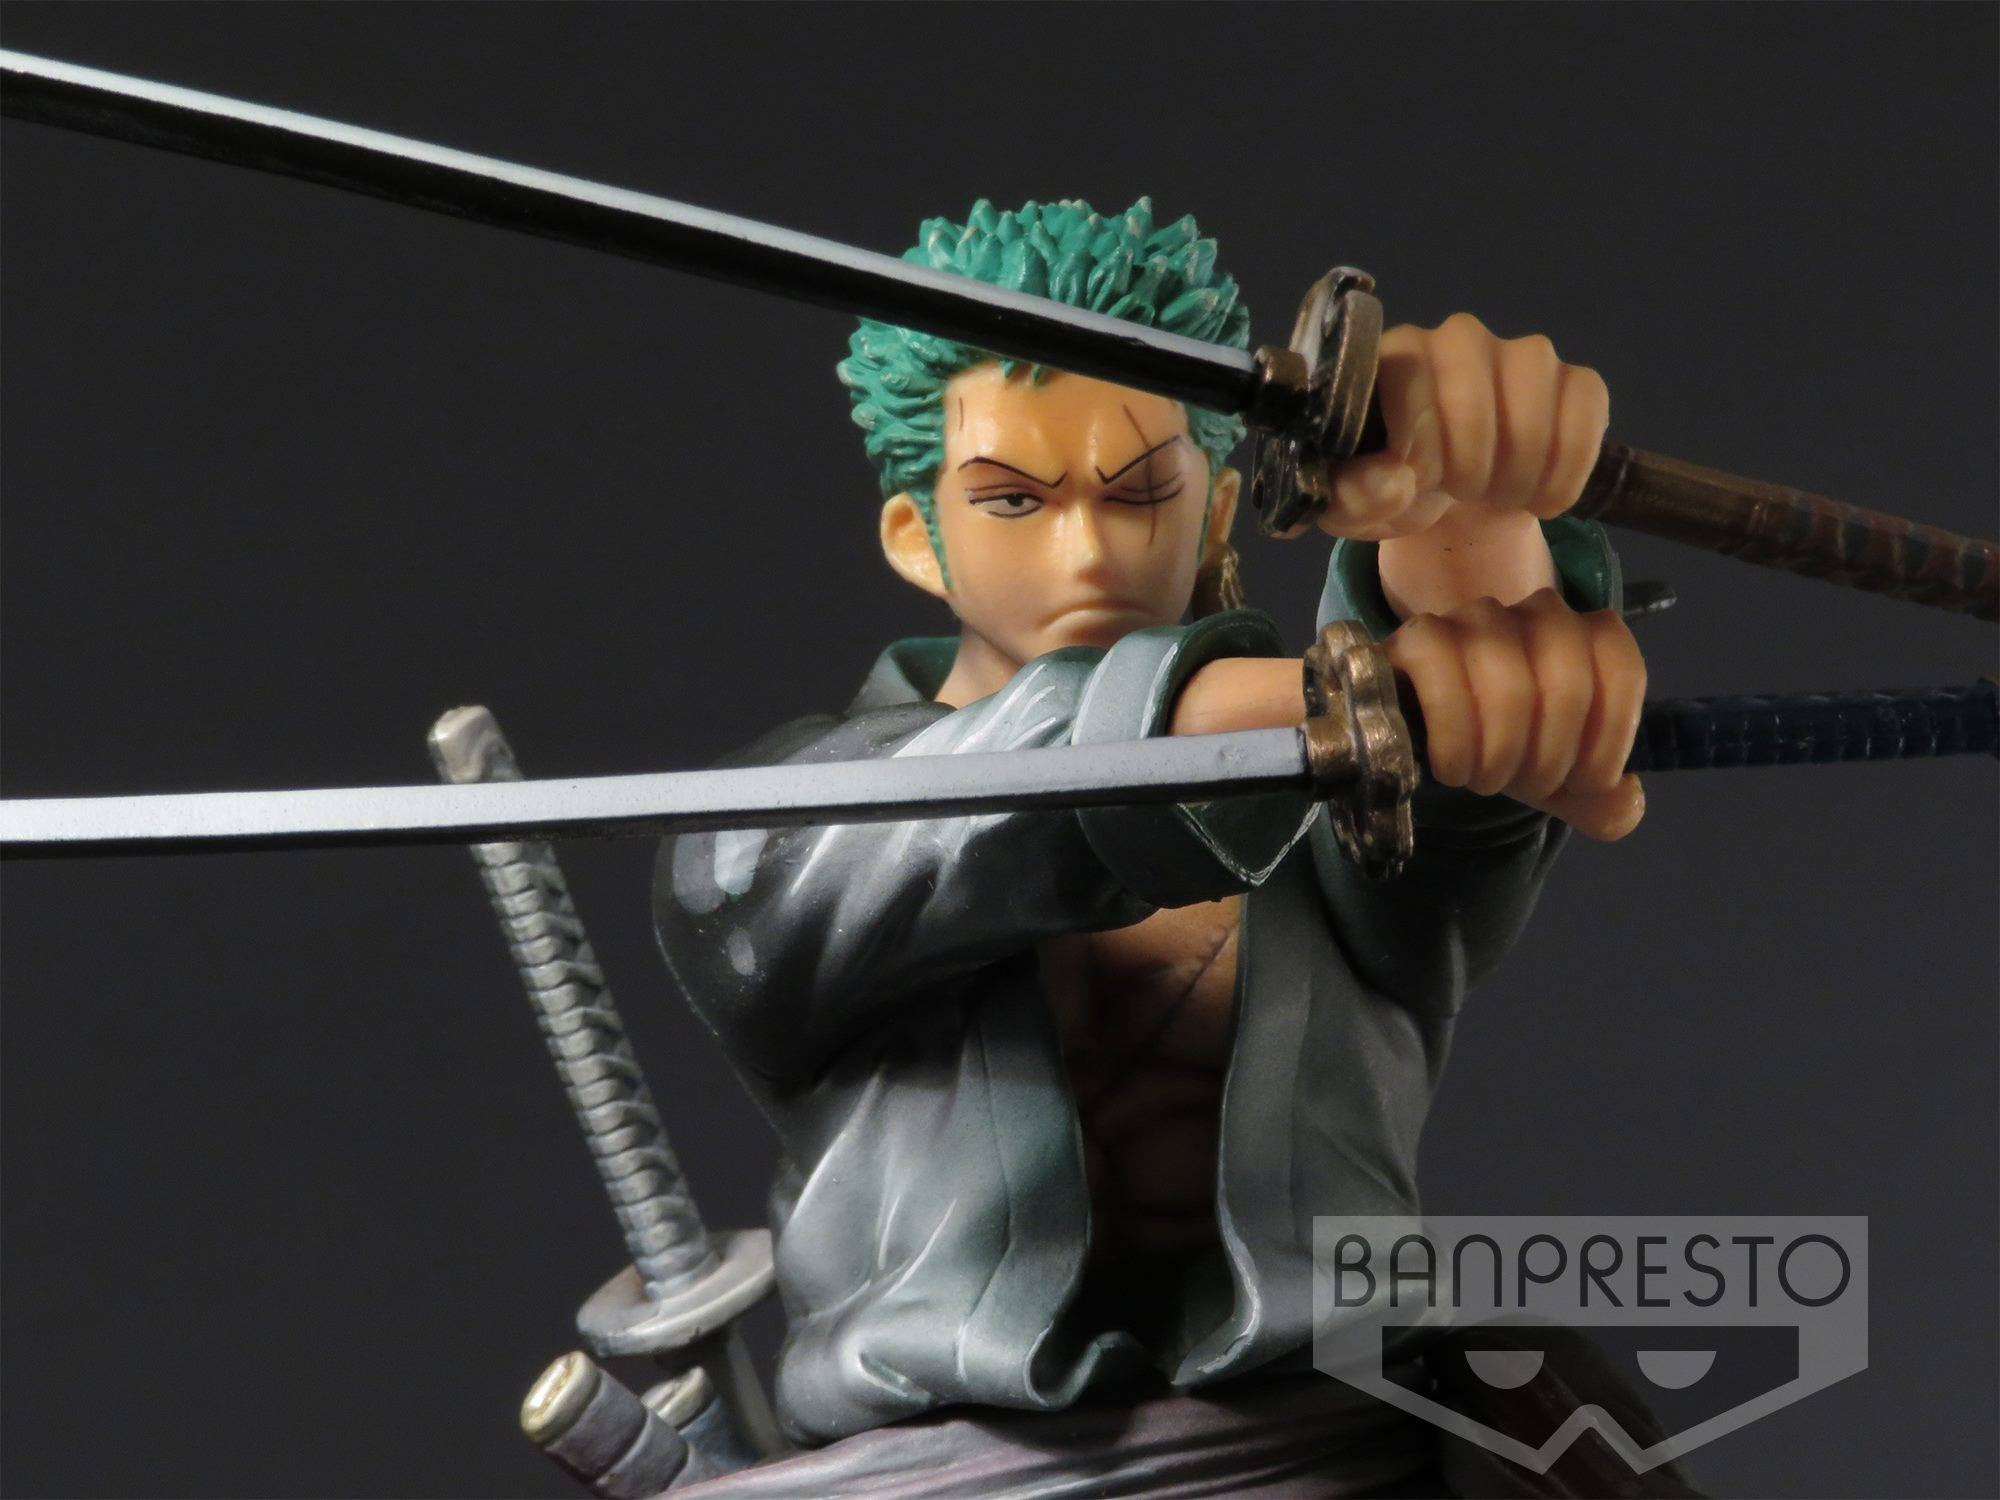 Banpresto - Prize Item 35386 - One Piece Sculptures - Zoro (Shining Color Ver.)